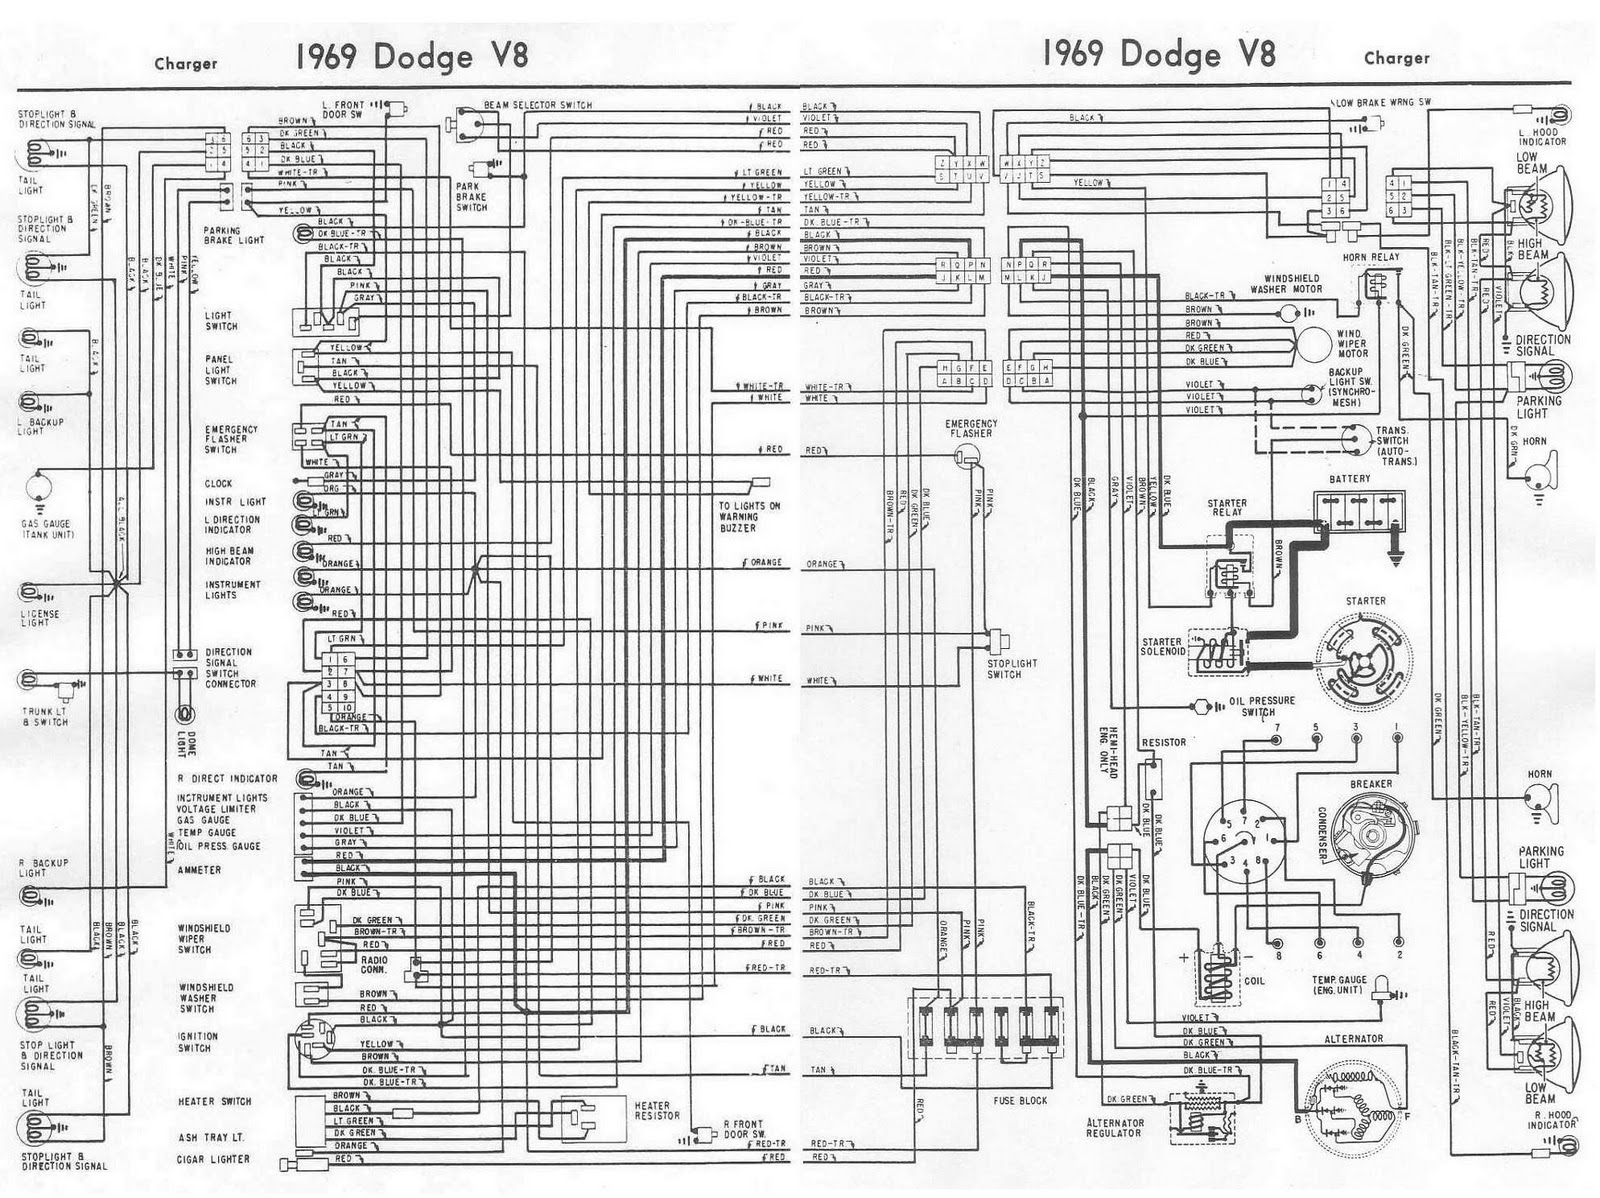 1970 Ford F100 Wiring Diagram Choice Image - Diagram Design Ideas